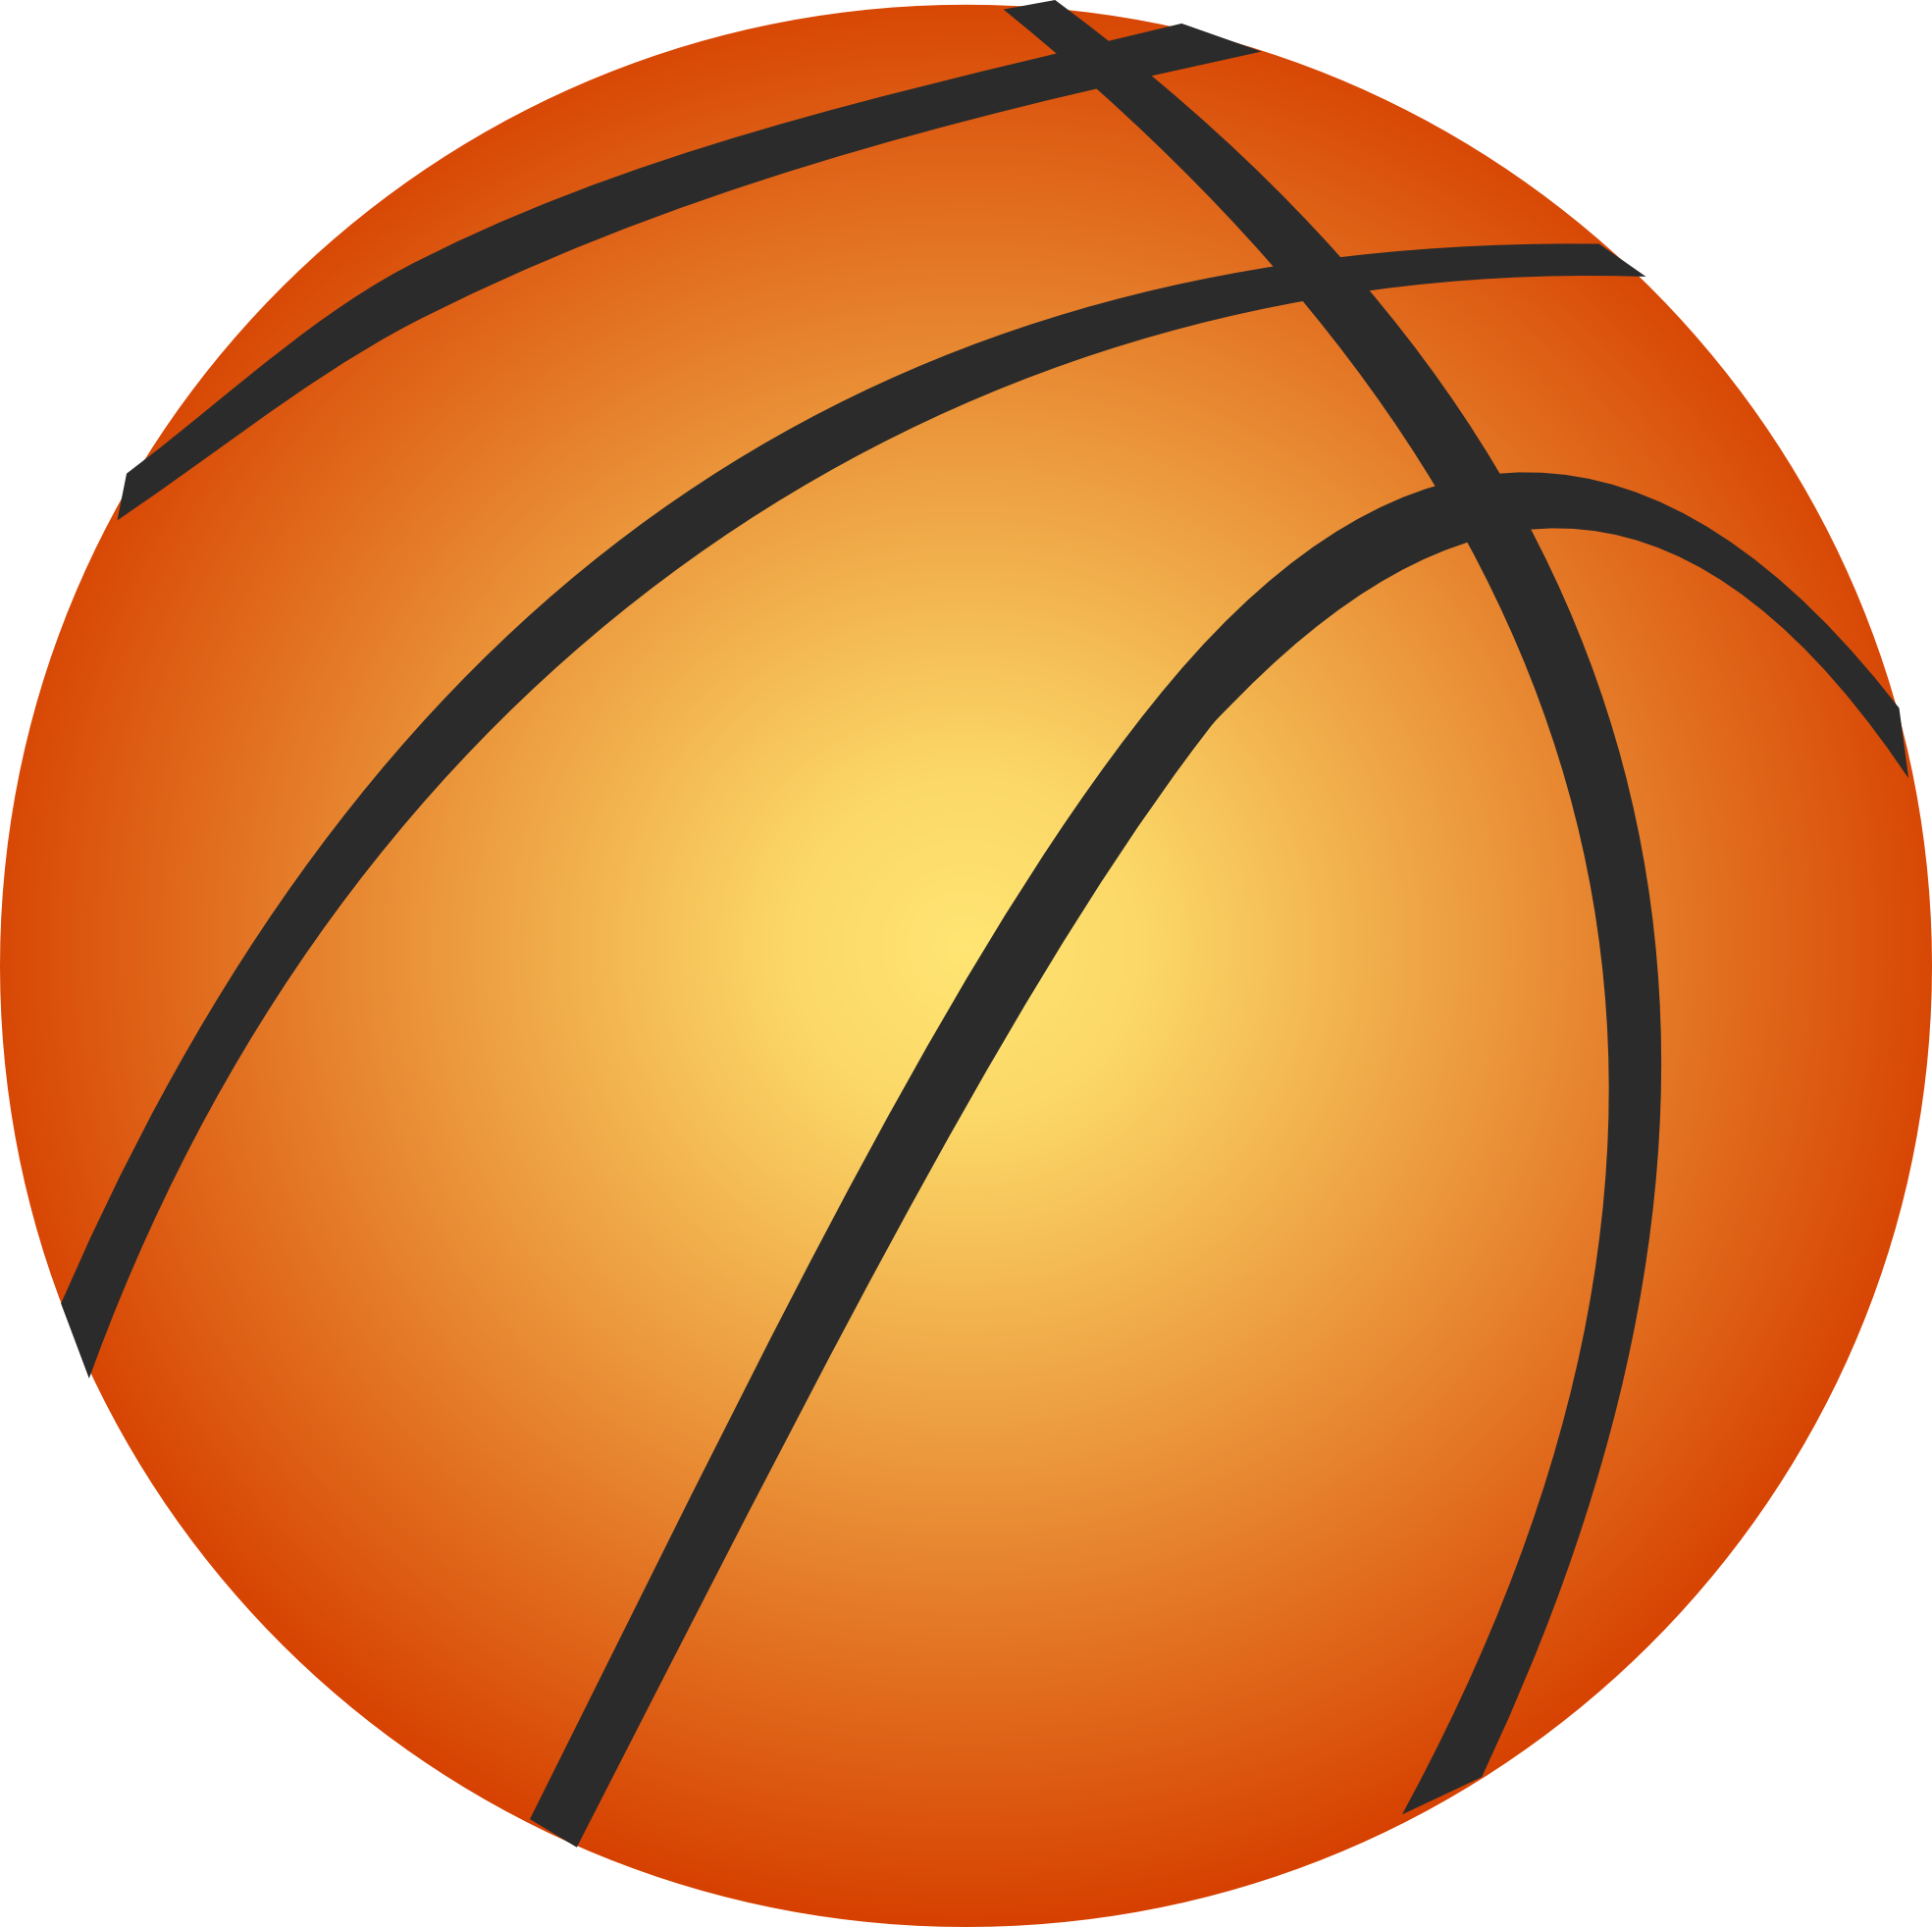 Letters clipart basketball. Free cartoon cliparts download